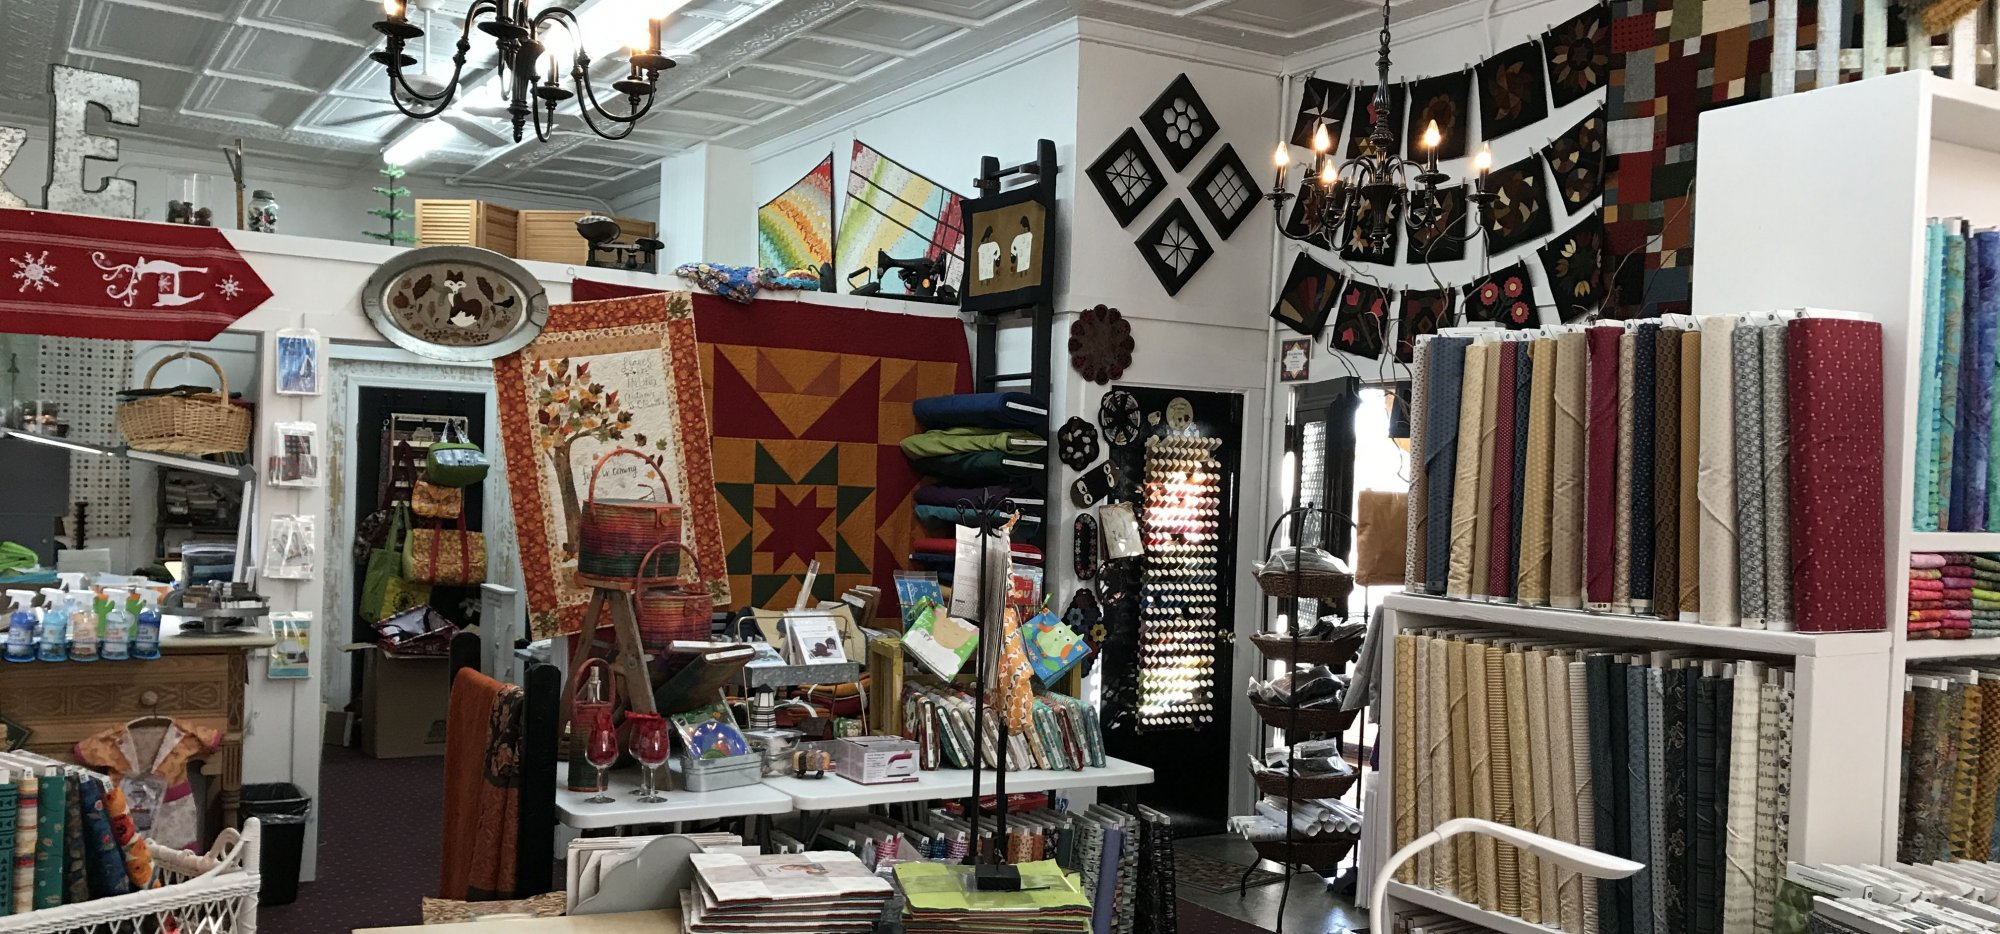 Mabel & Ethel's Quilt Shoppe / M&E Quilt Shoppe - Ohio's Most Fun ... : the quilt shoppe - Adamdwight.com